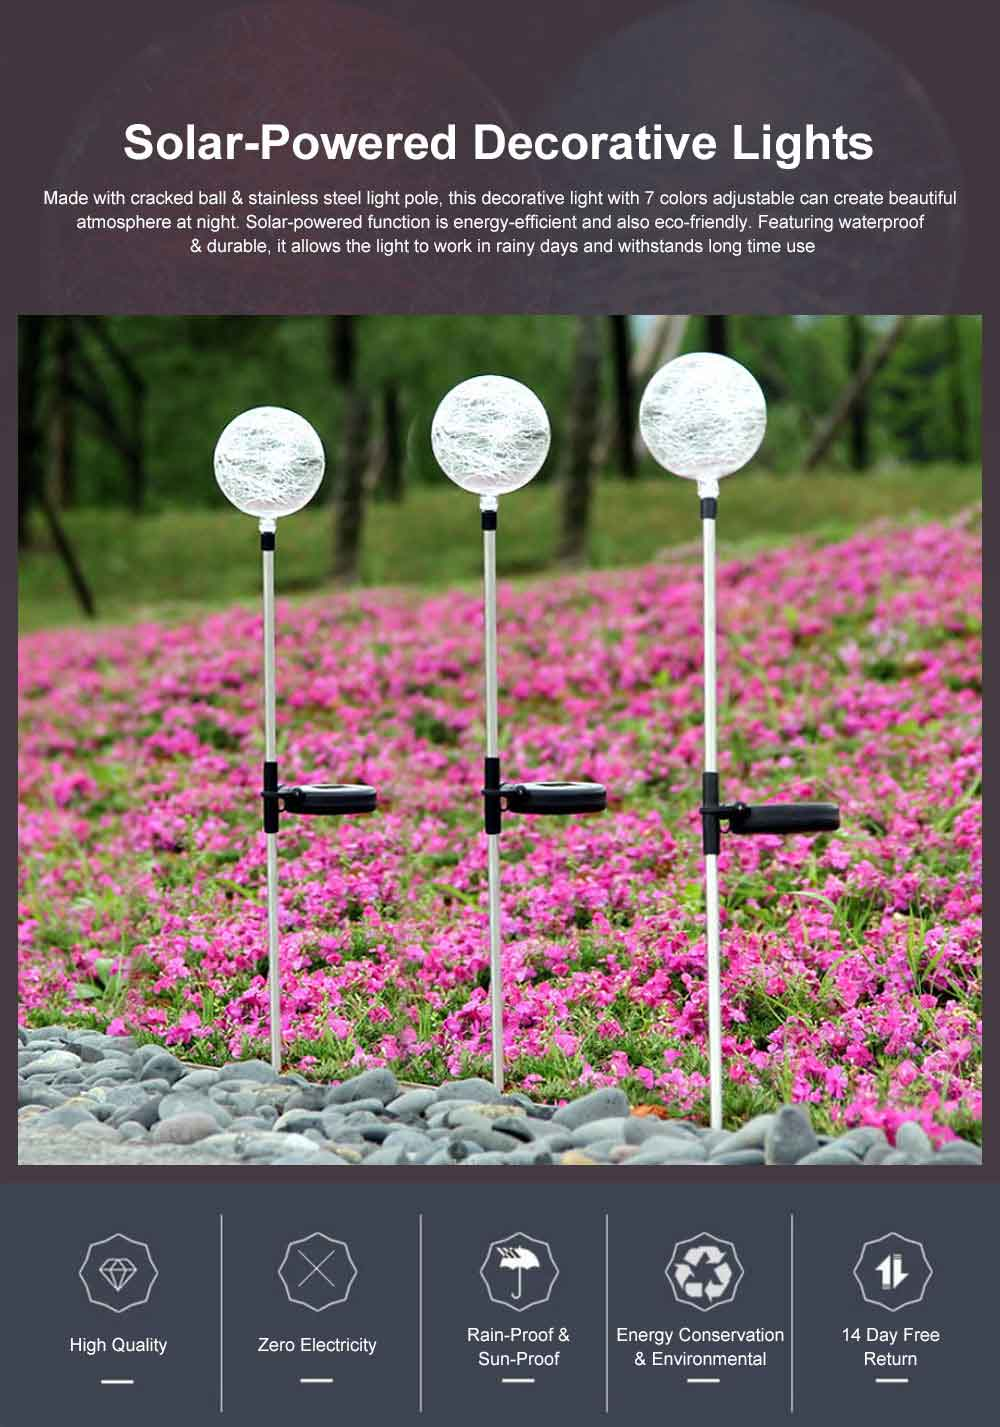 2pcs Solar-Powered Led Decorative Lights 7 Colors Cracked Glass Ball LED Garden Lights Waterproof Solar Night Patio Lights for Outdoor Use 0